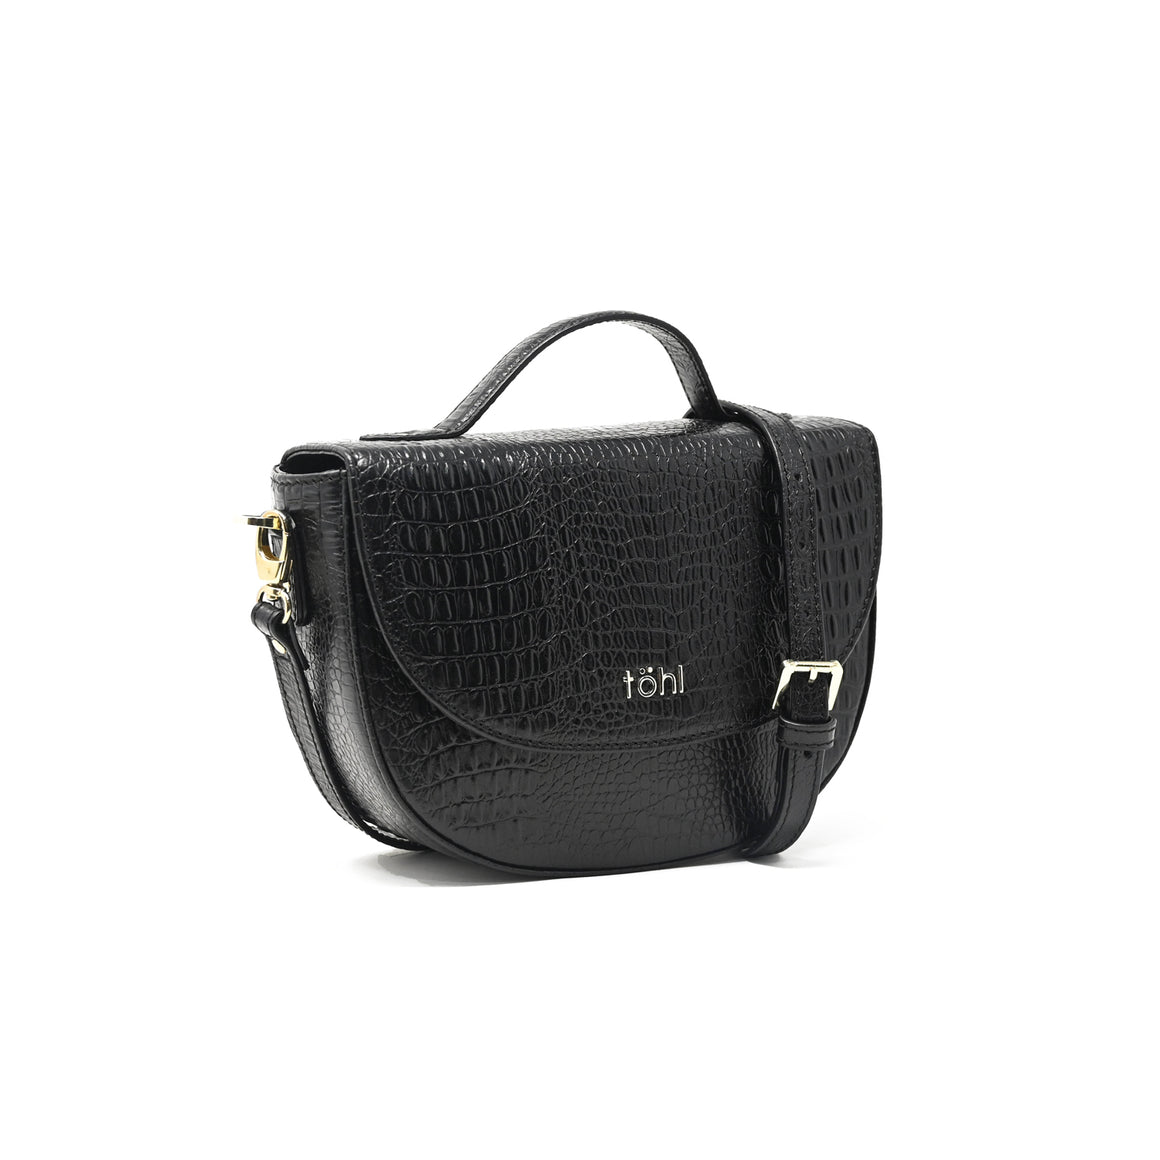 SG0036 - TOHL SWINTON WOMEN'S CROSS-BODY BAG - BLACK